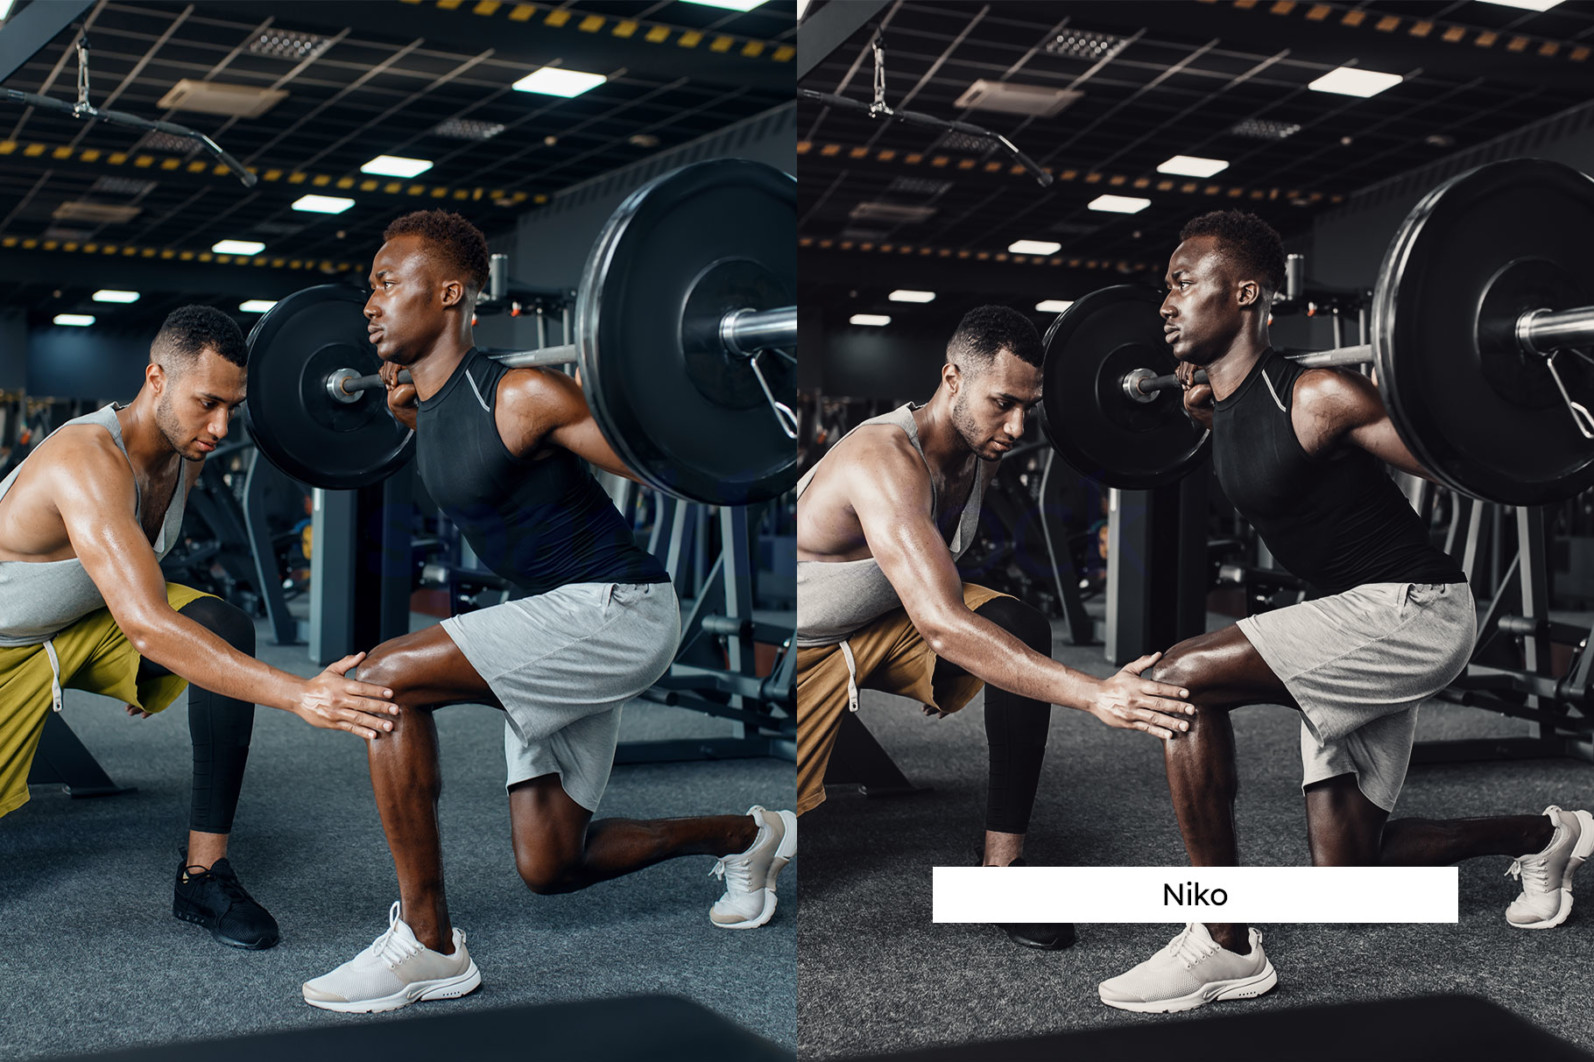 20 Workout Lightroom Presets and LUTs - 05 44 -